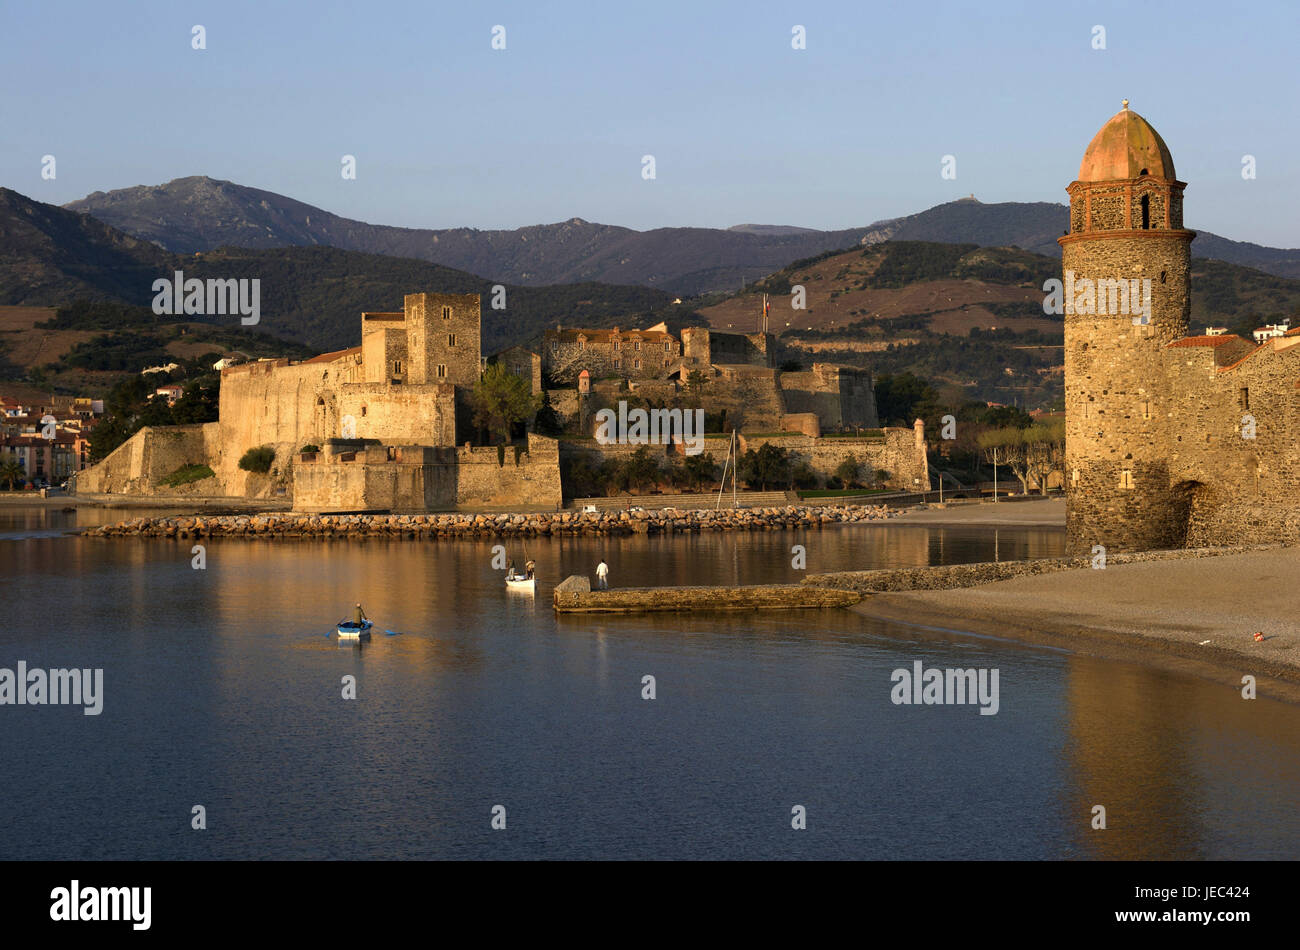 Europe, France, Collioure, Fischer on a boot, in the background on the château royal, Europe, France, Languedoc - Stock Image